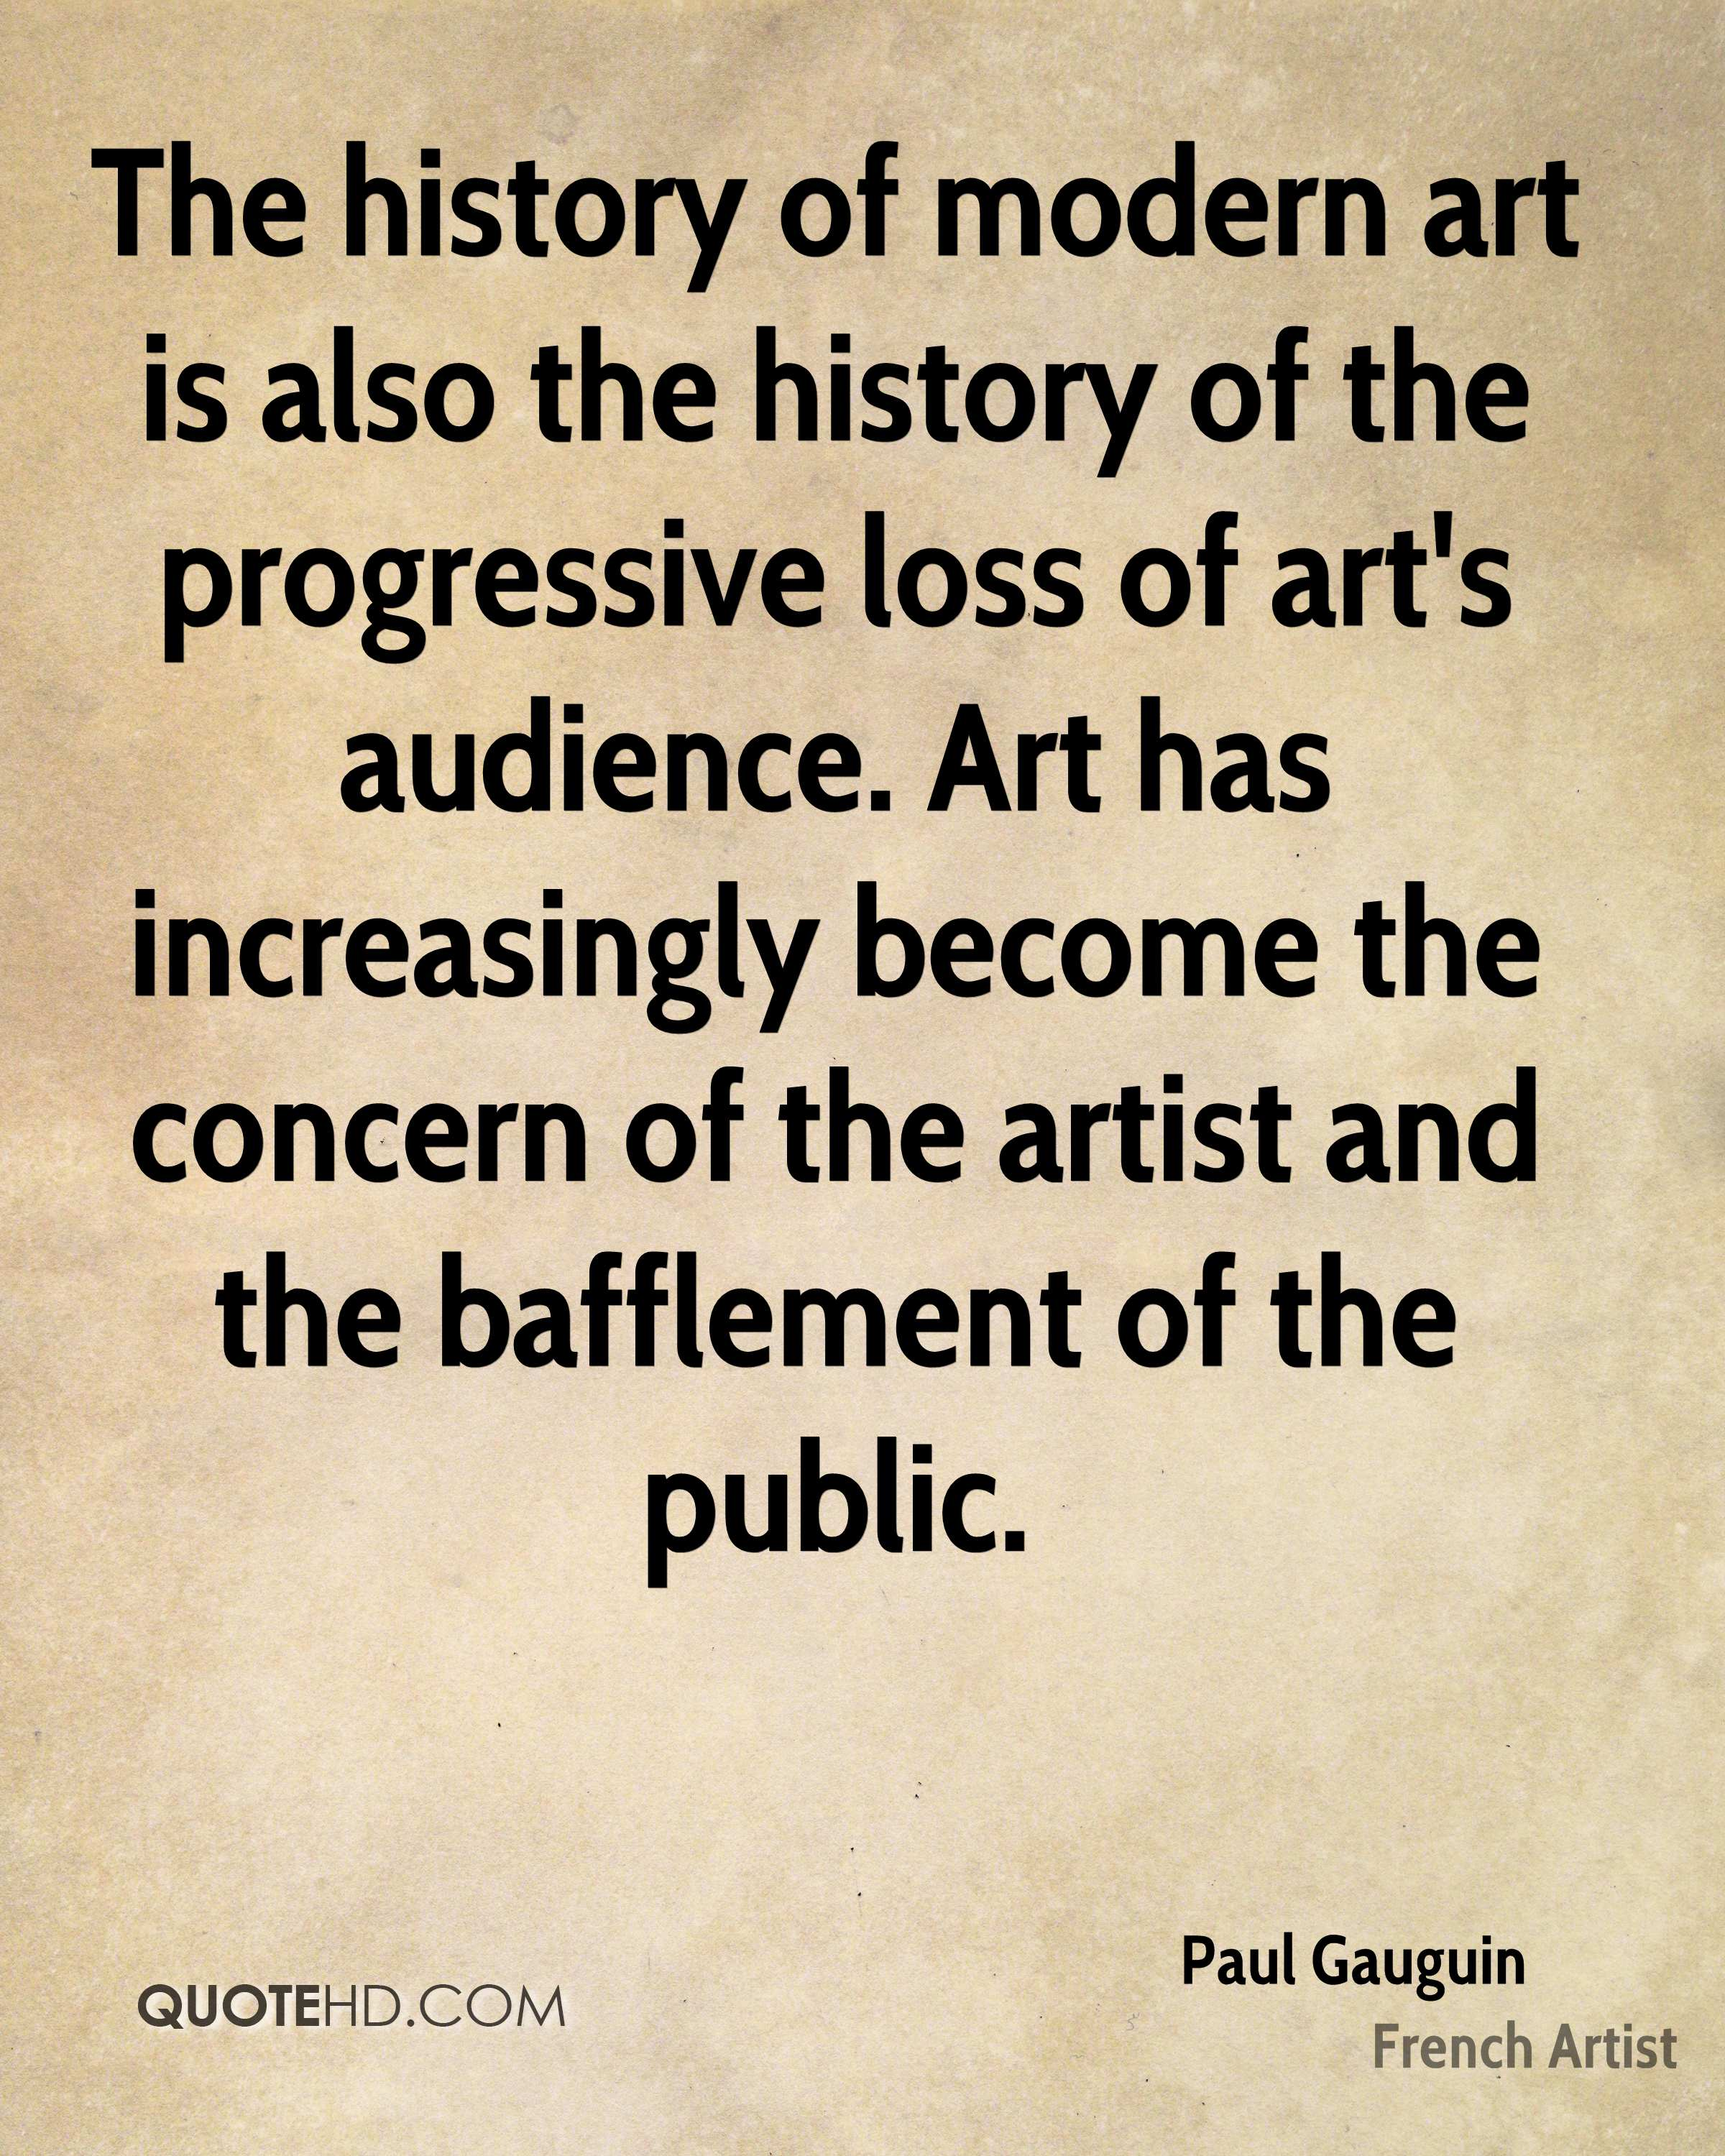 The history of modern art is also the history of the progressive loss of art's audience. Art has increasingly become the concern of the artist and the bafflement of the public.